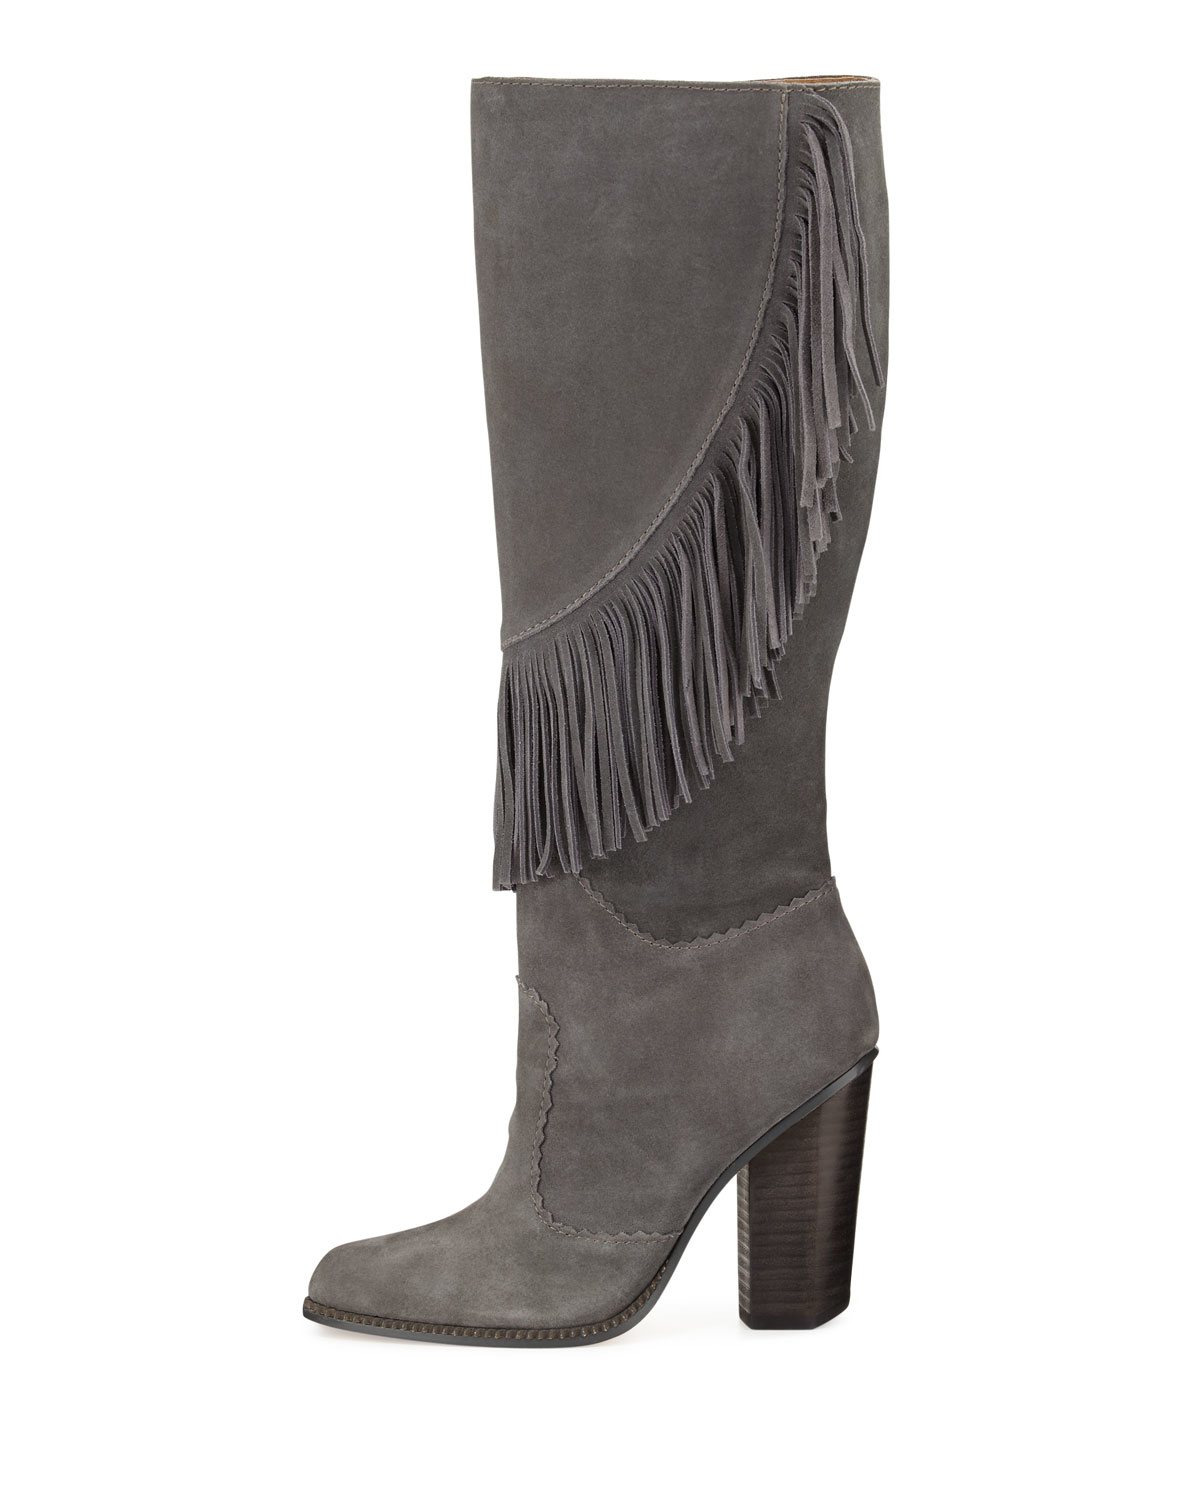 1744c5ff4b7 Lyst - Cynthia Vincent Fringed Suede Knee-High Boots in Gray